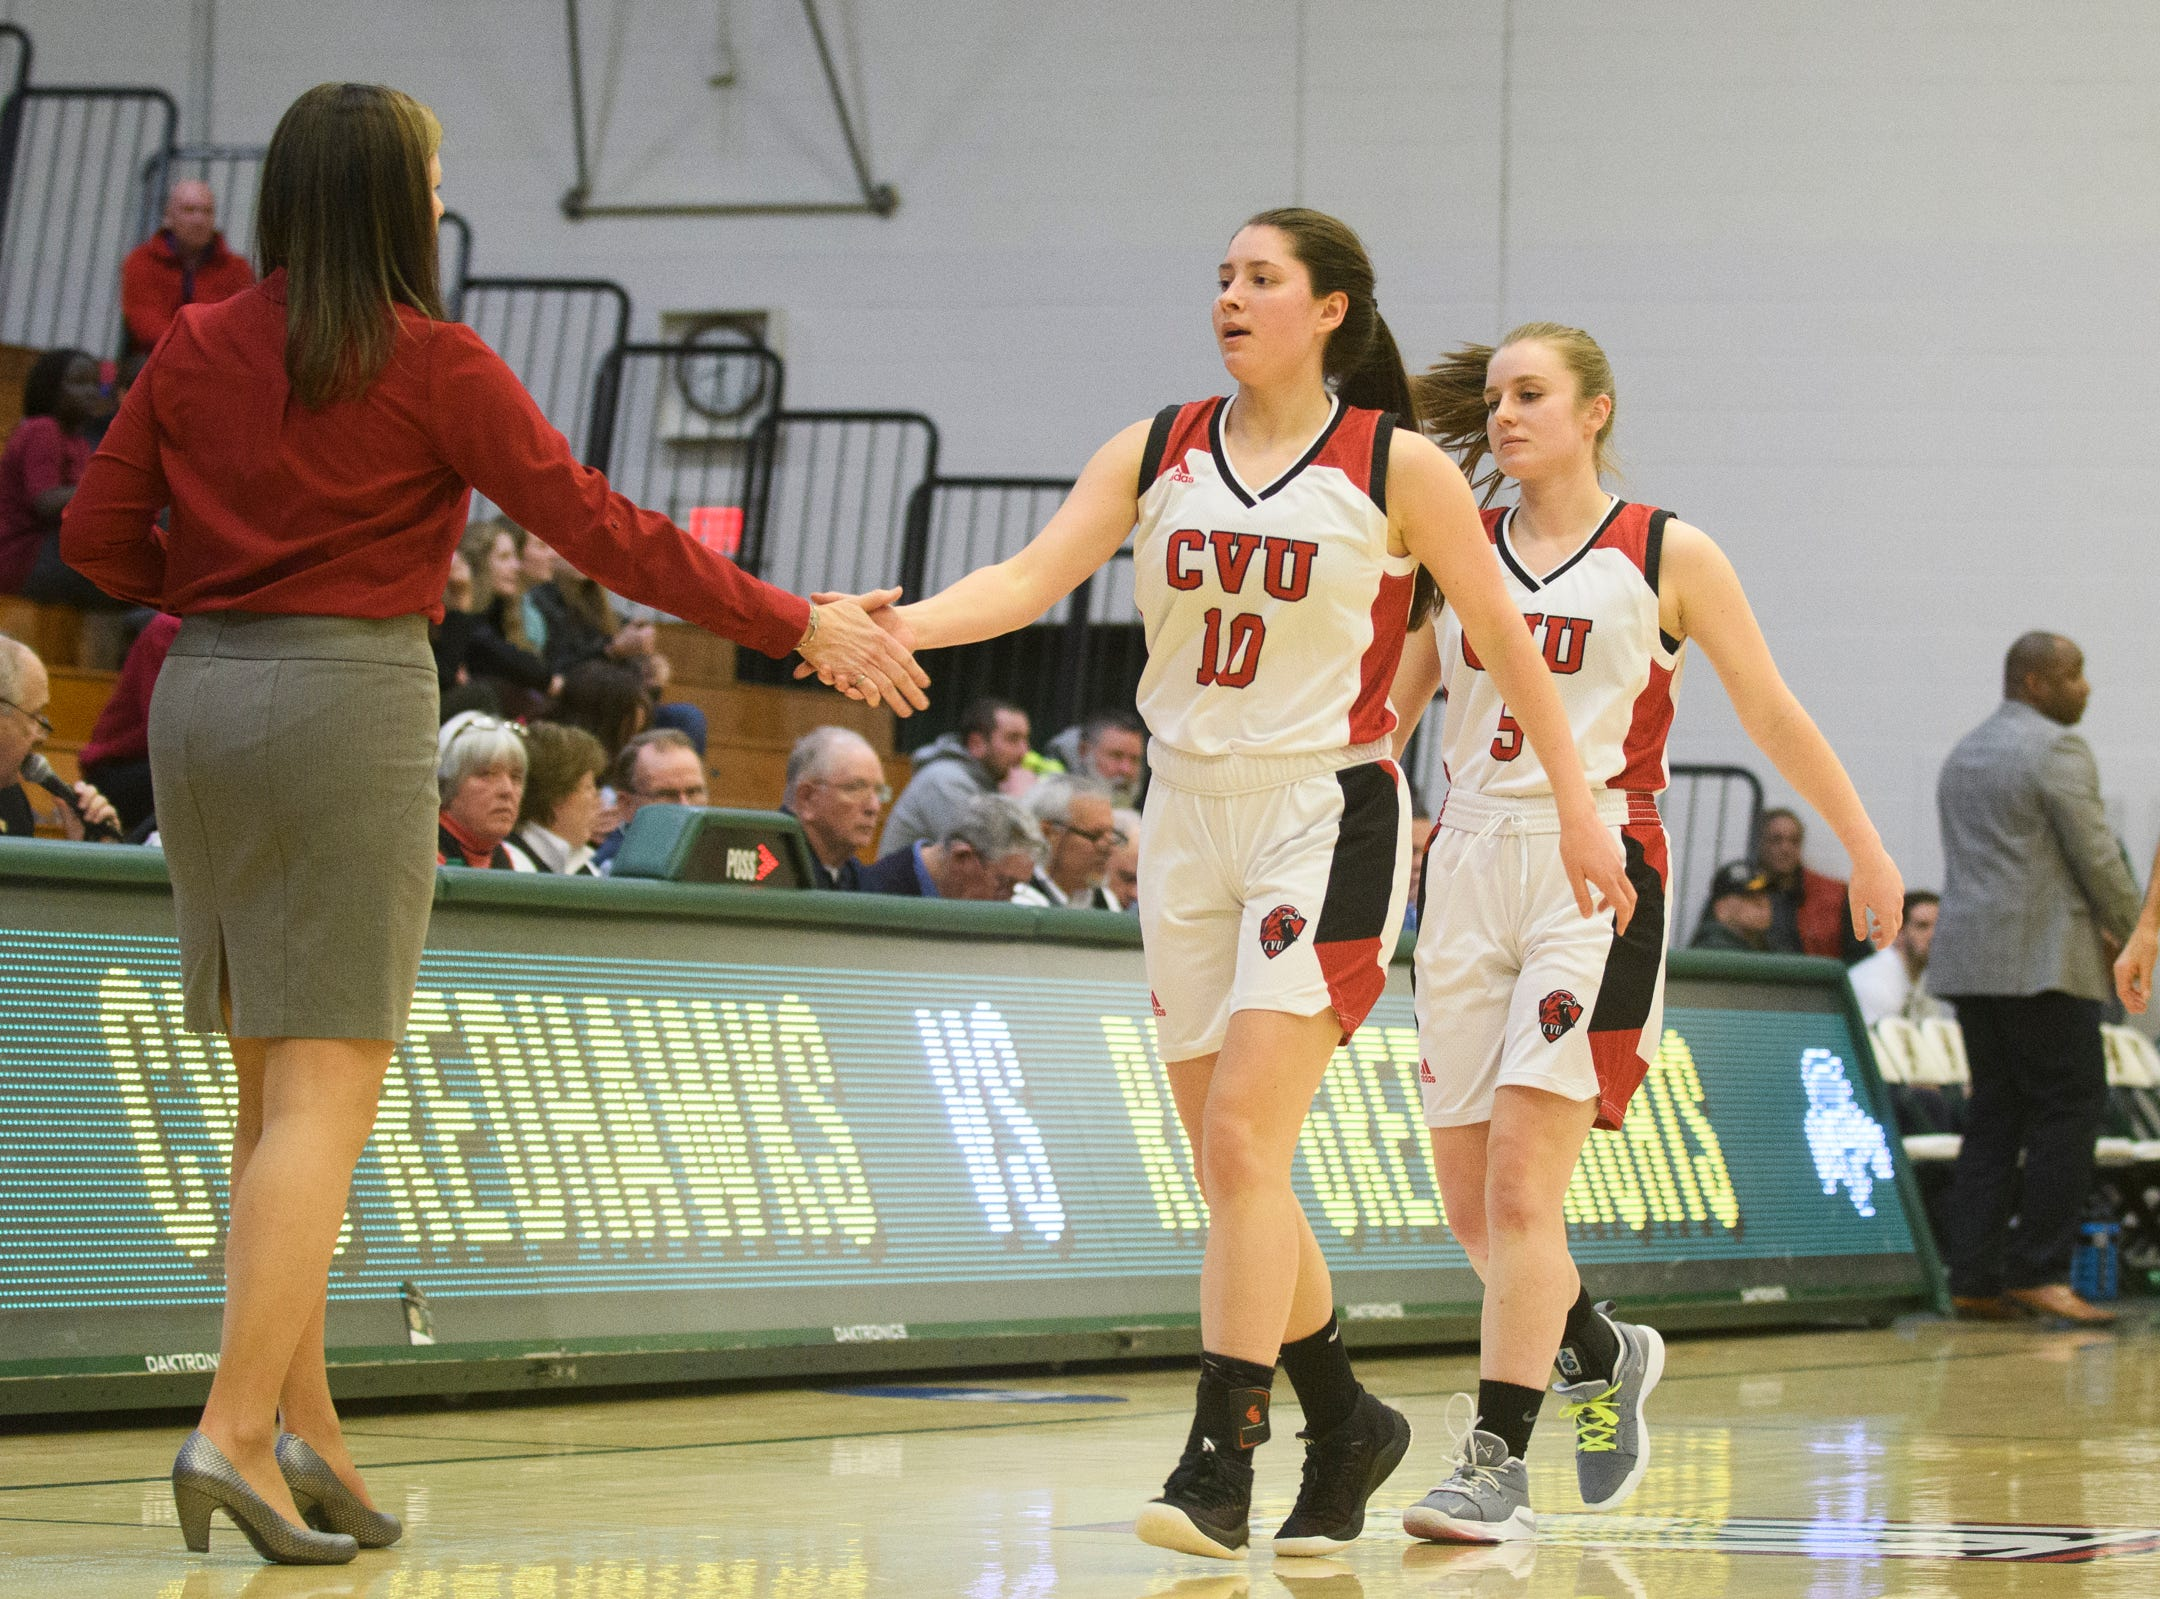 CVU's Quinn Boardman (10) high fives head coach Ute Otley as she heads to the bench during the girls semifinal basketball game between the Rice Green Knights and the Champlain Valley Union Redhawks at Patrick Gym on Wednesday nigh March 6, 2019 in Burlington, Vermont.